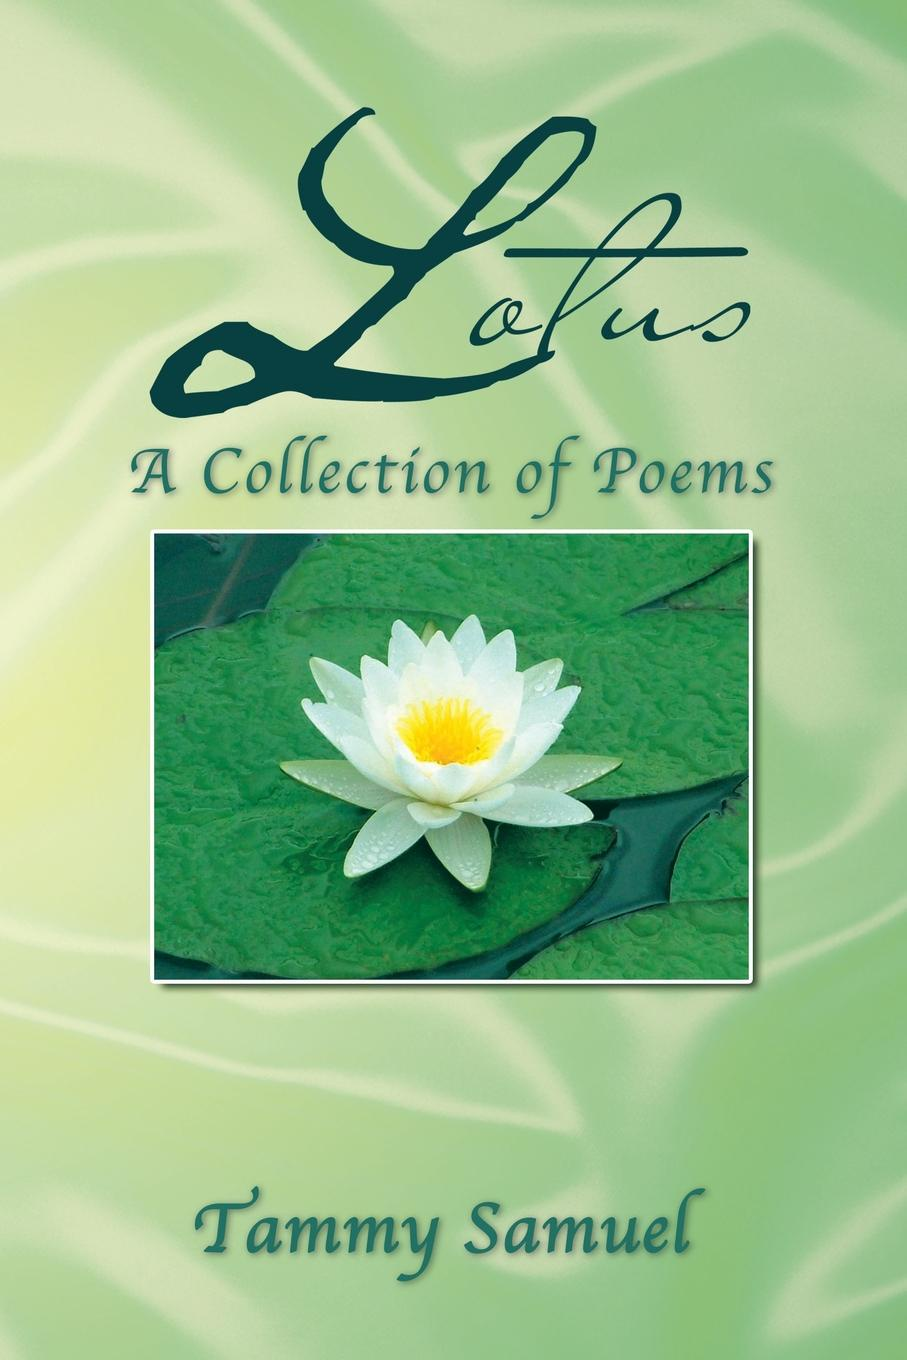 Tammy Samuel LOTUS. A Collection of Poems: : A Collection of Poems virginia hamilton adair ants on the melon a collection of poems